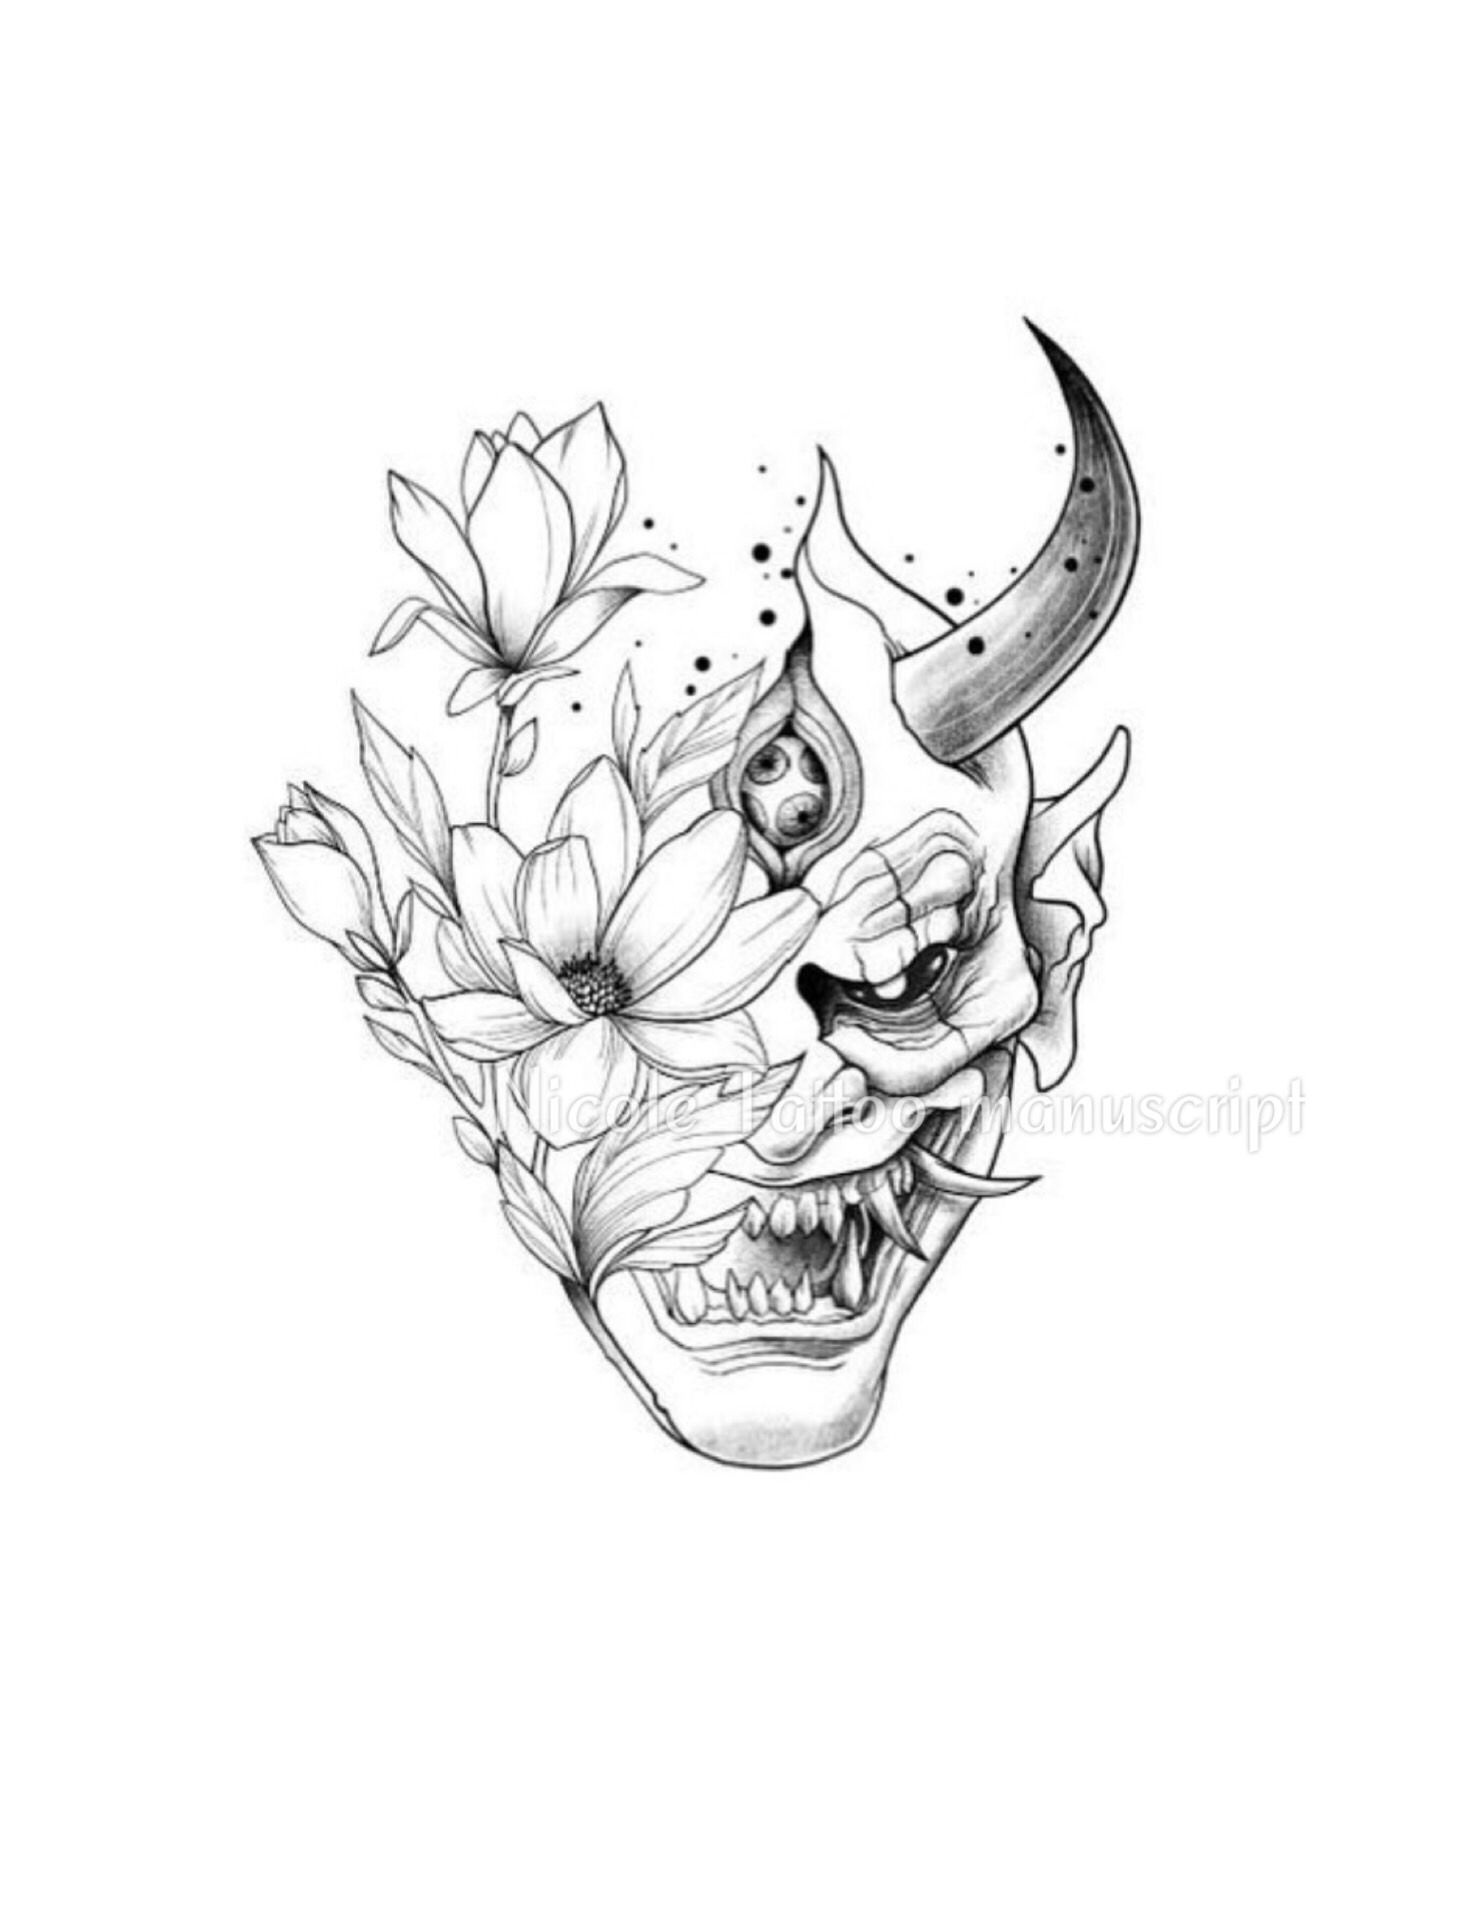 Hannya tattoo Two extremes